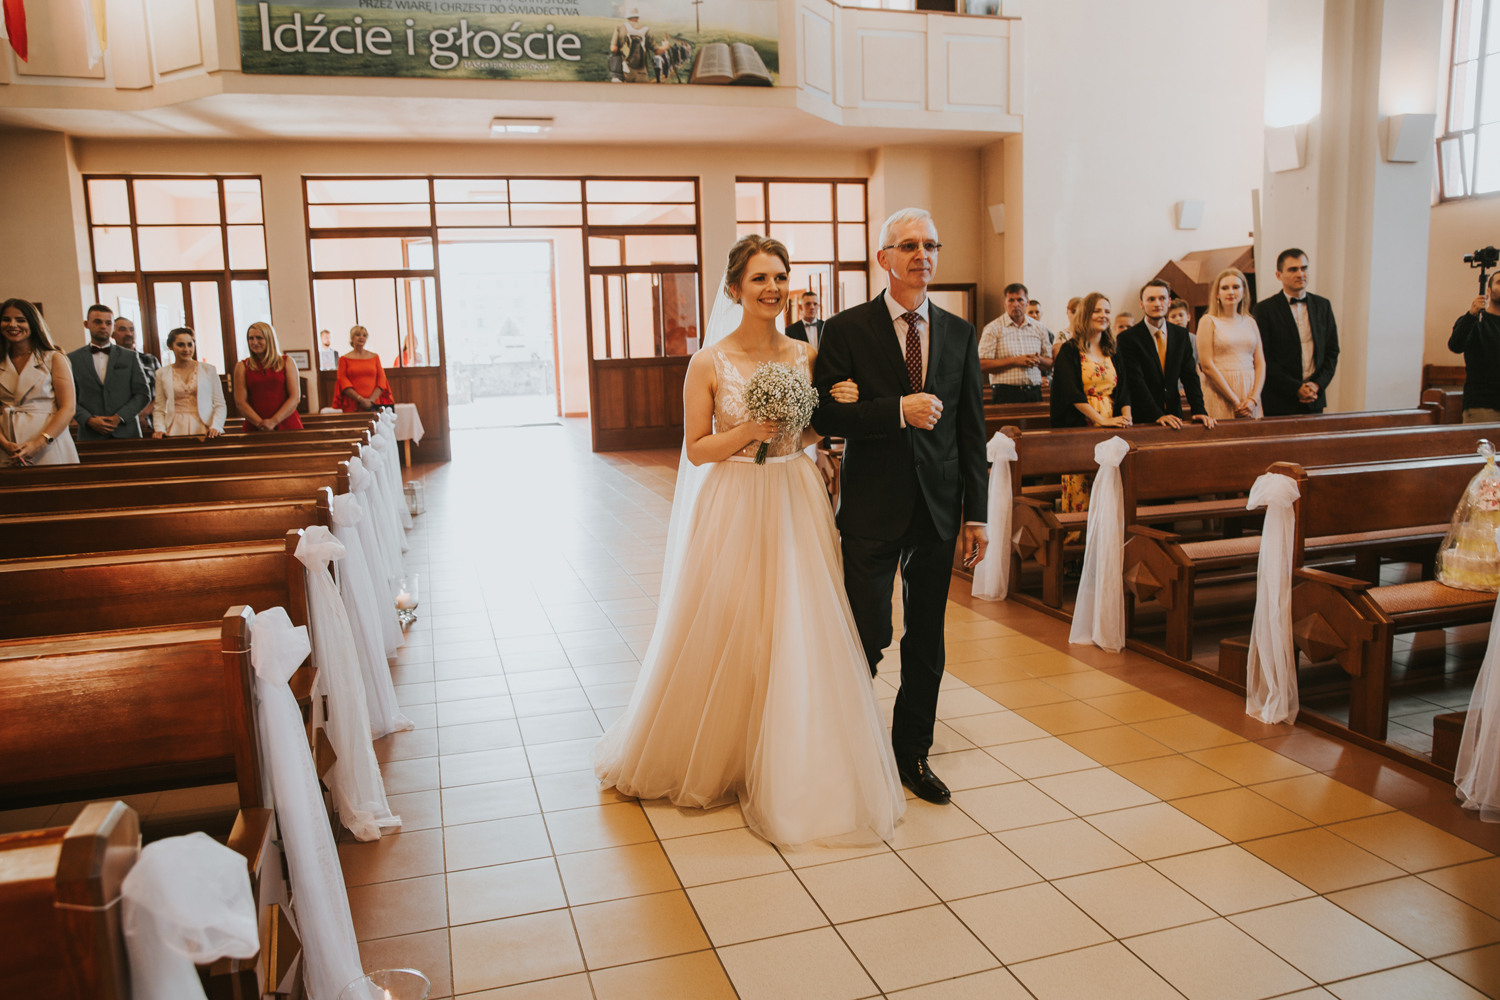 weddingphotograher_klaudia_rafal_nationalpark_167.jpg